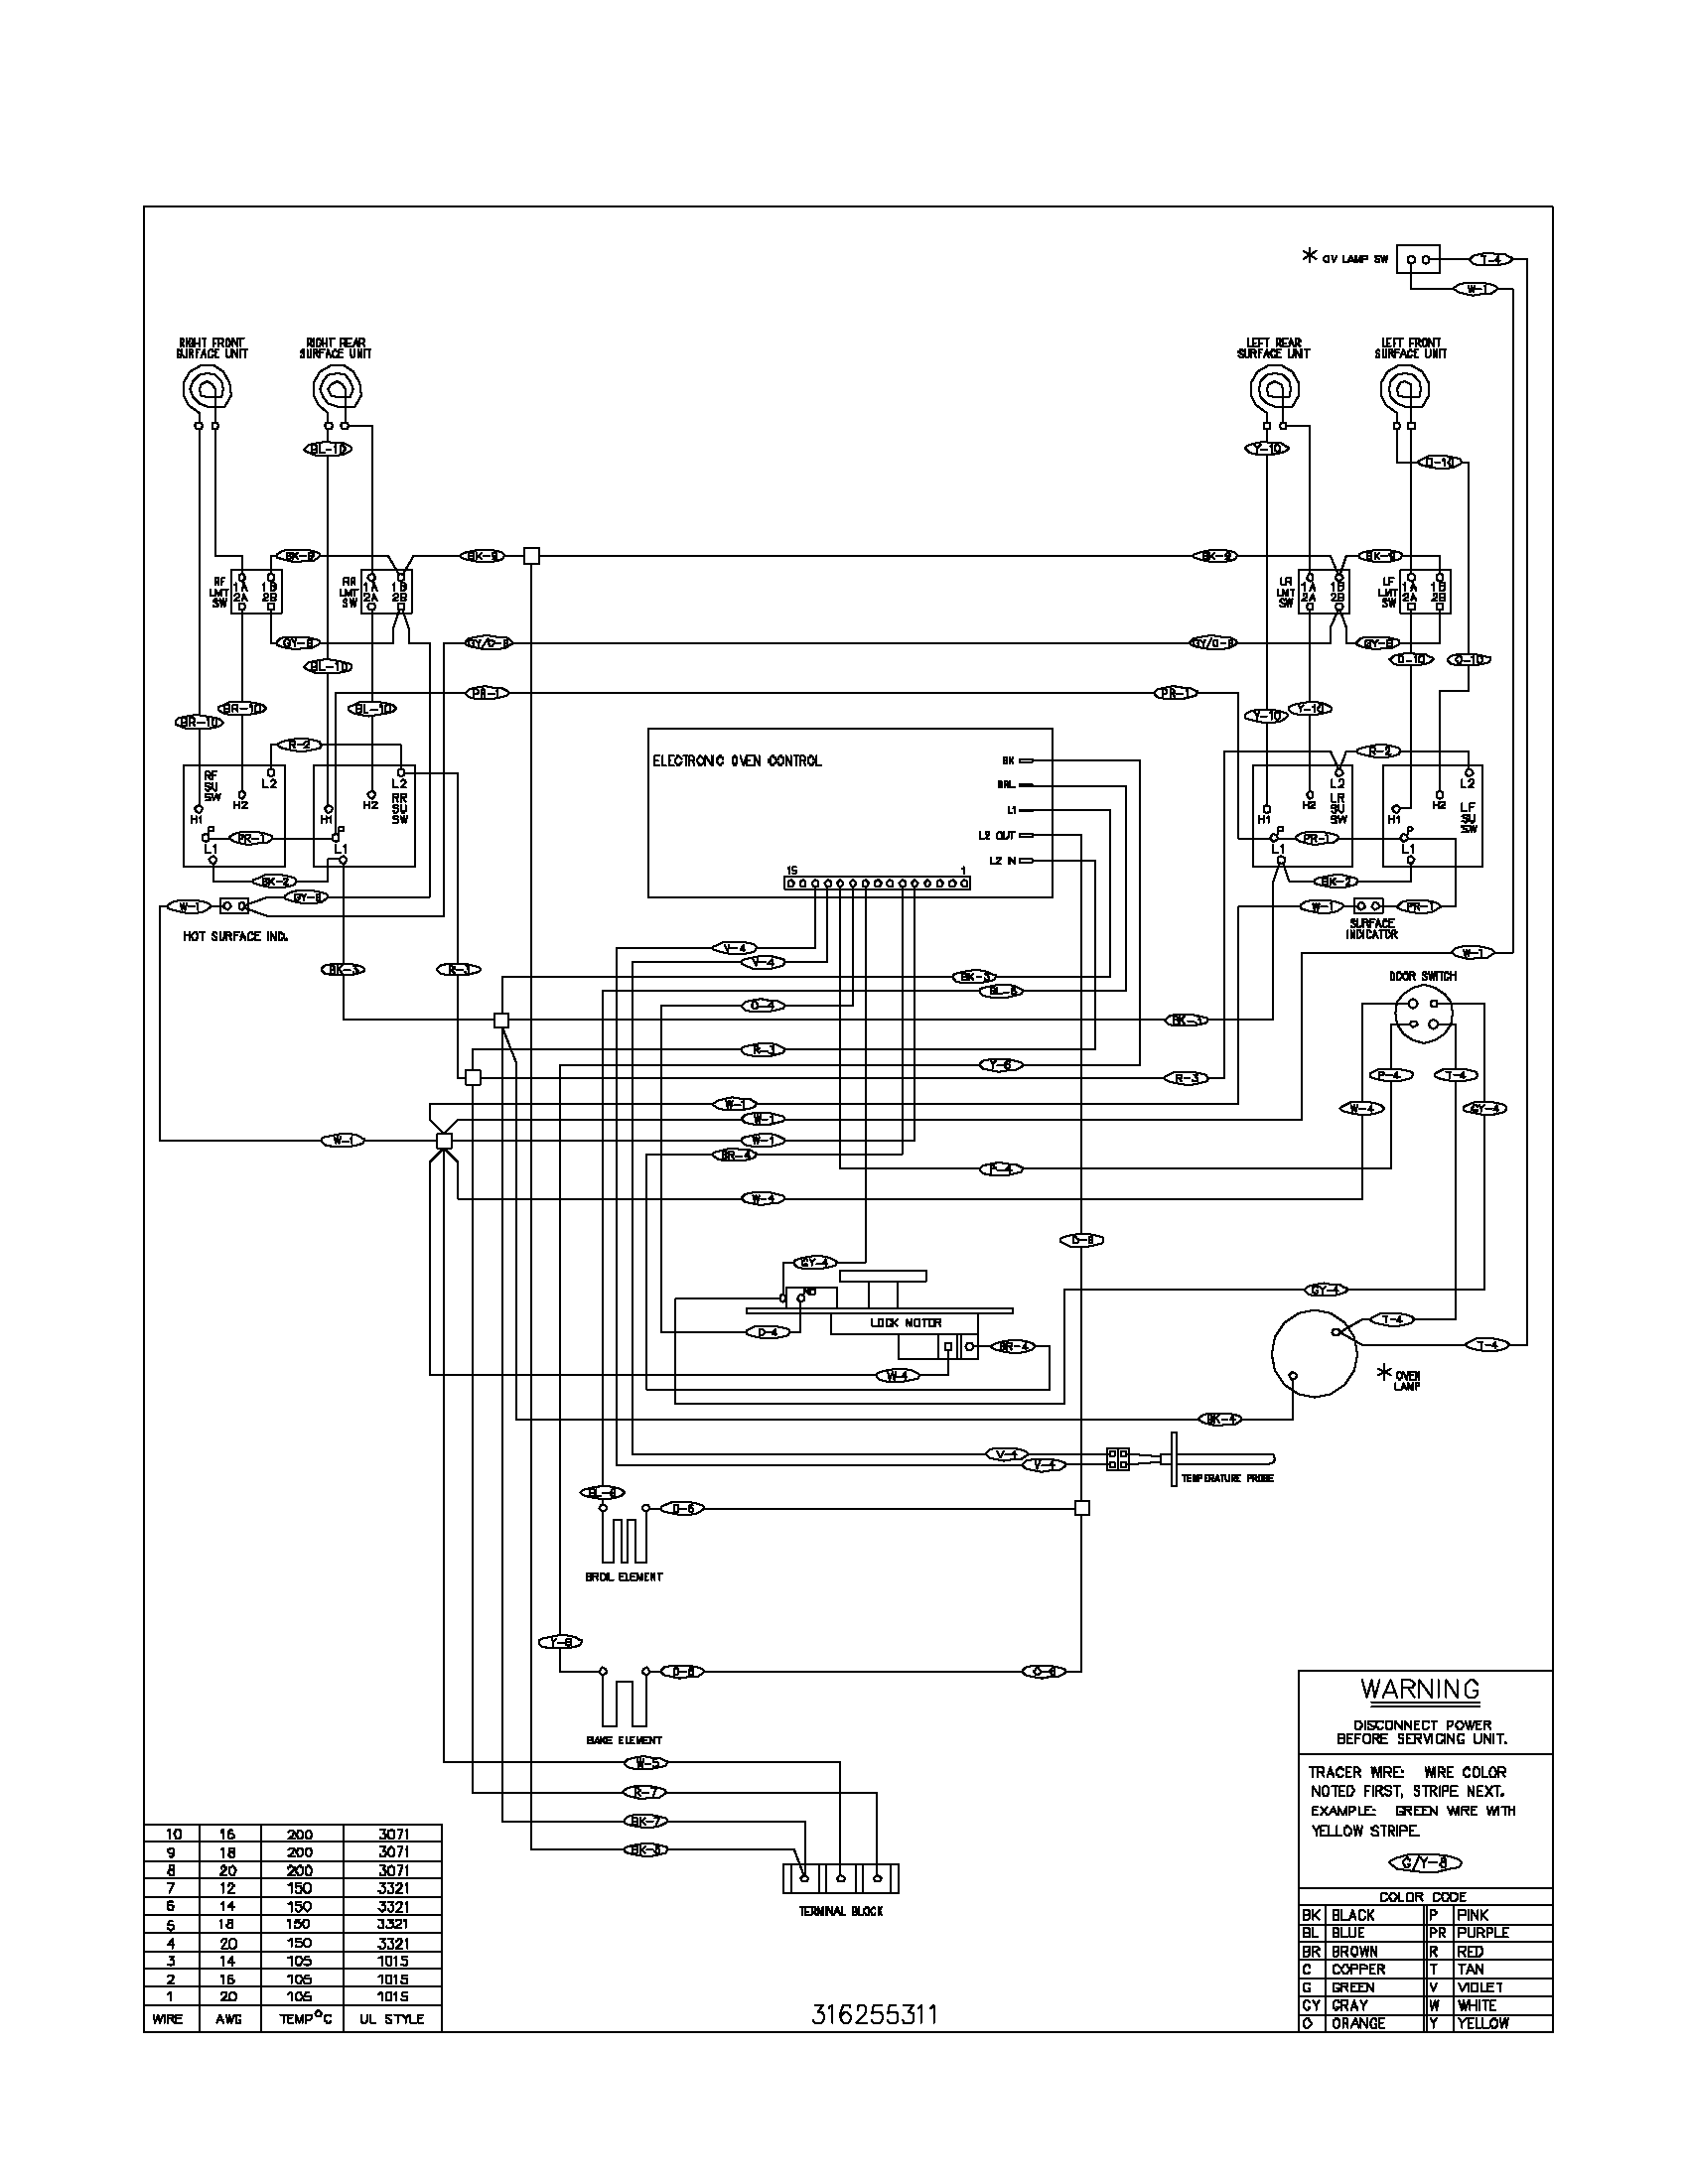 Frigidaire Gallery besides Single Phase Air  pressor Schematic likewise Amana Export Package Terminal Air Conditioner Parts For Ptac And Wiring Diagram To additionally Kenmore Refrigerator Wiring Schematic as well Evaporator Wiring Diagram. on refrigerator schematic diagram